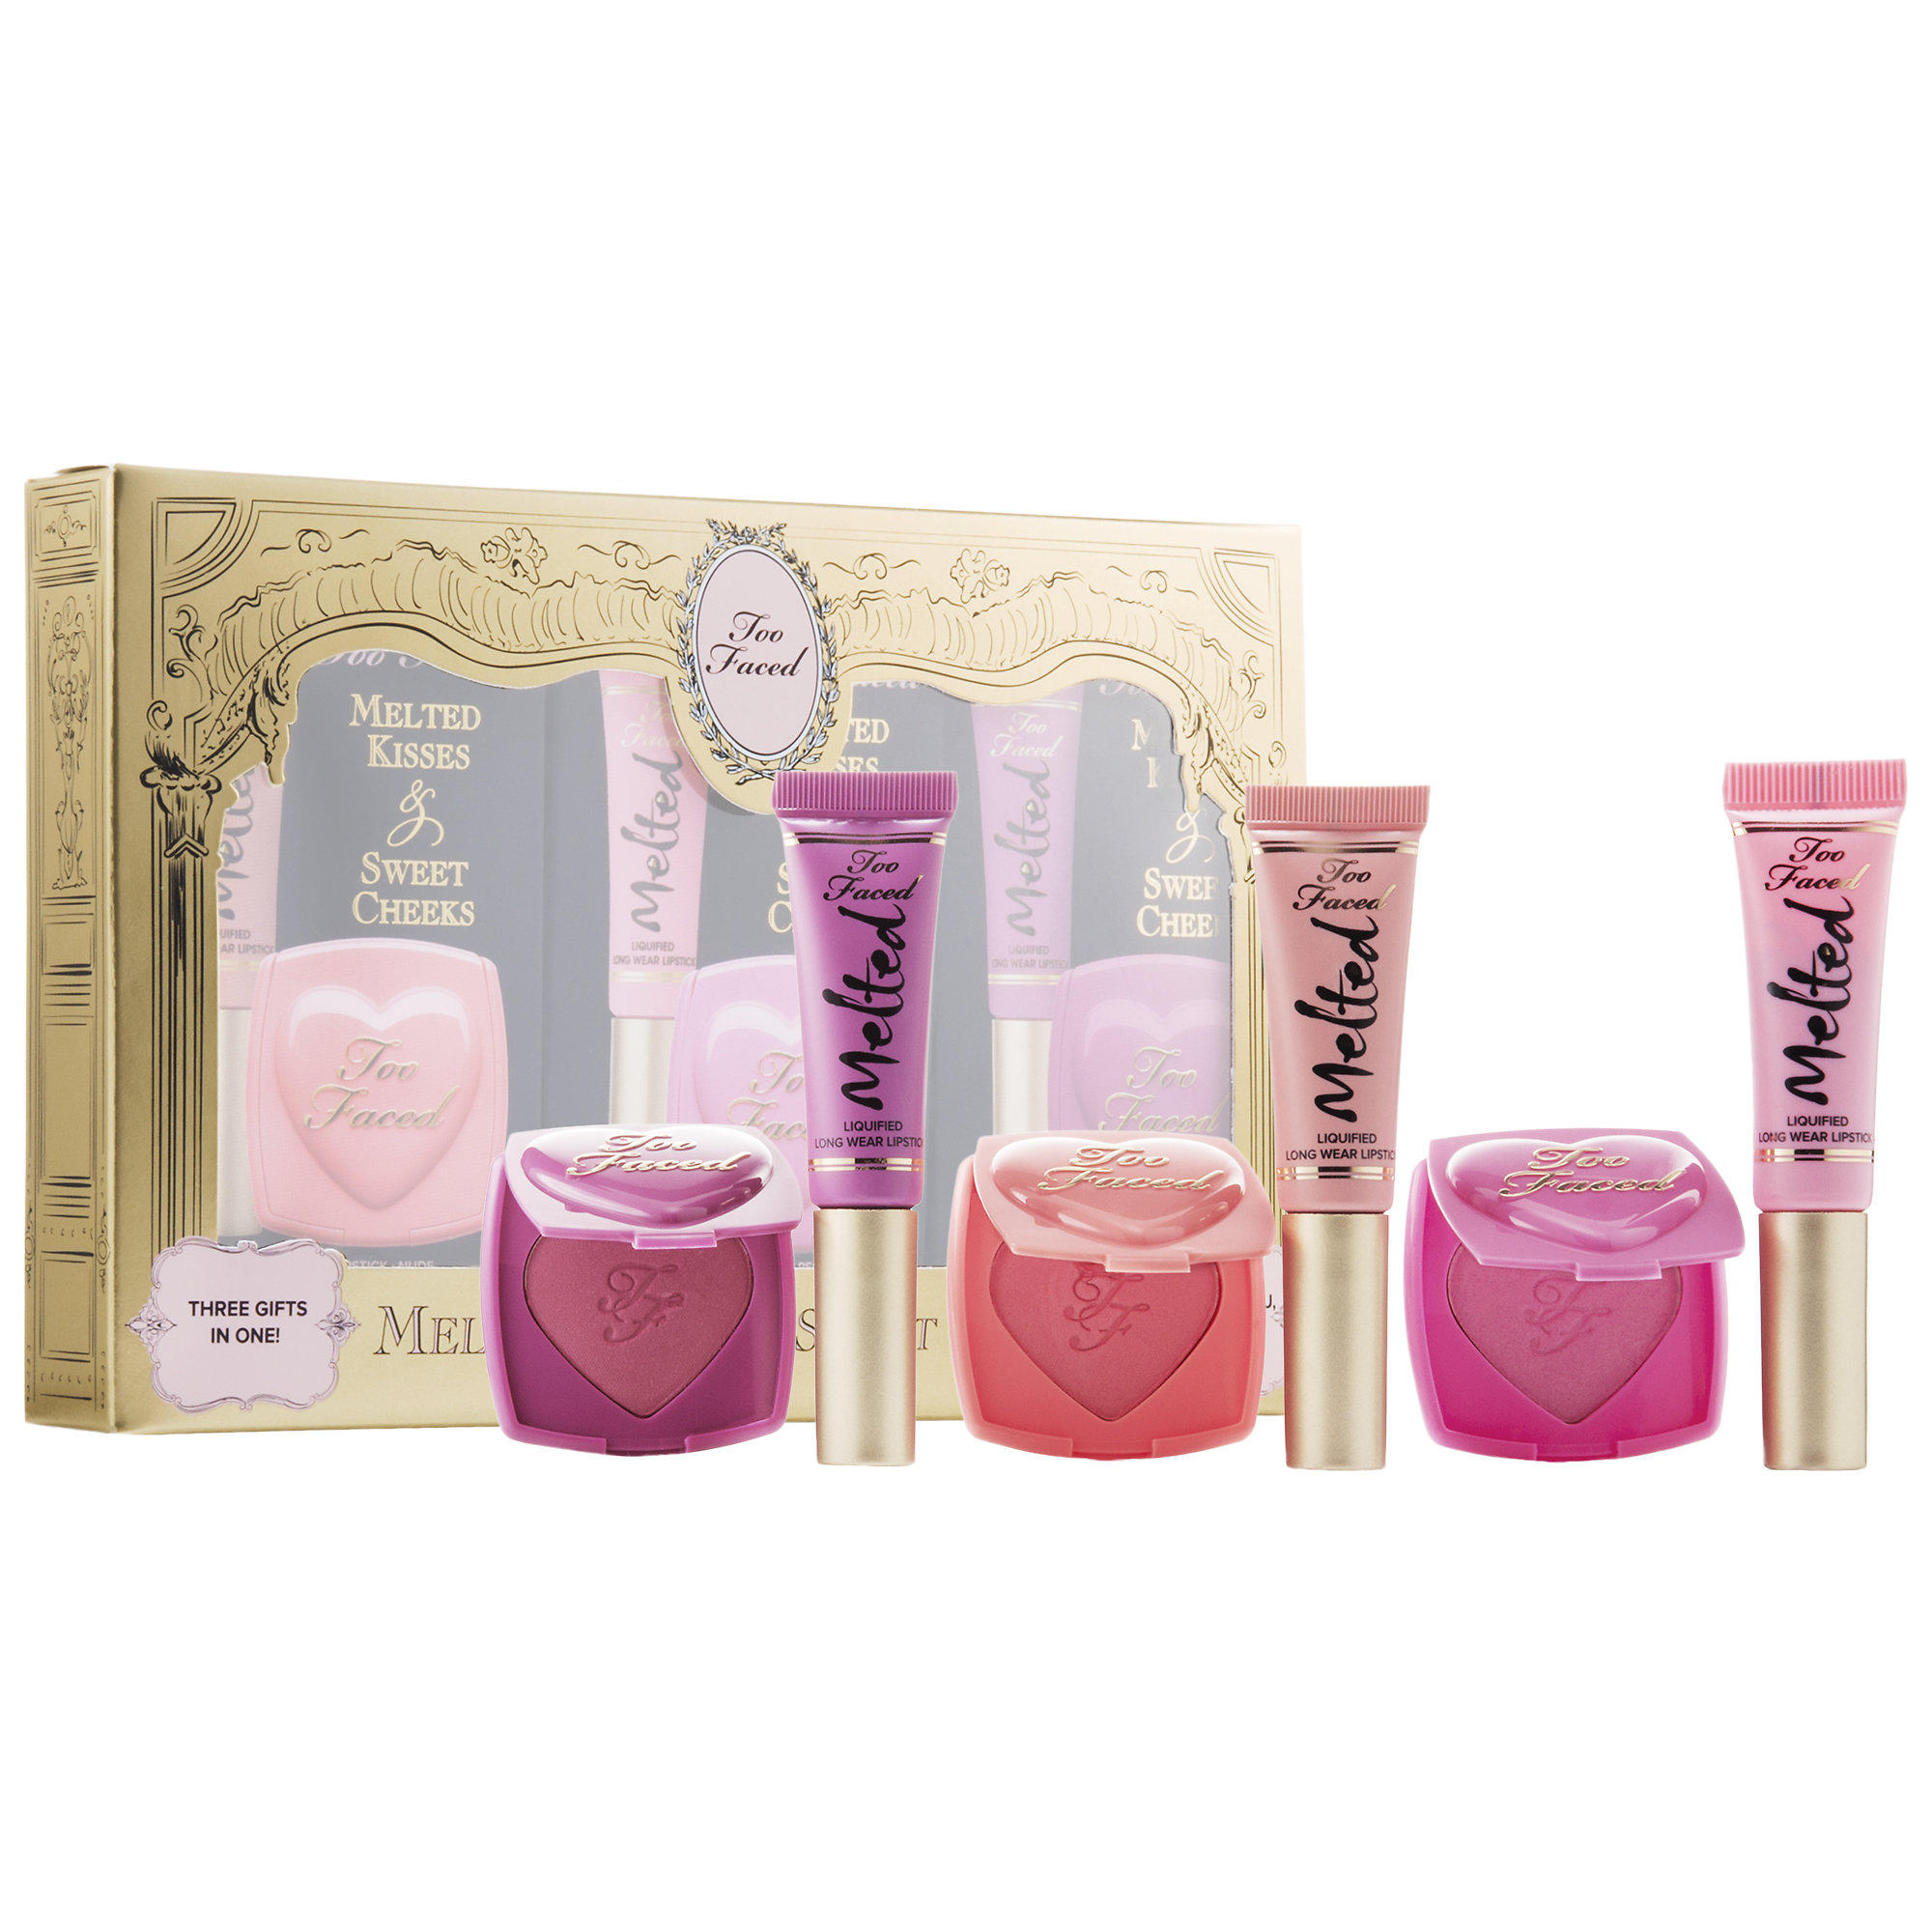 New Release Too Faced launched Melted Kisses & Sweet Cheeks